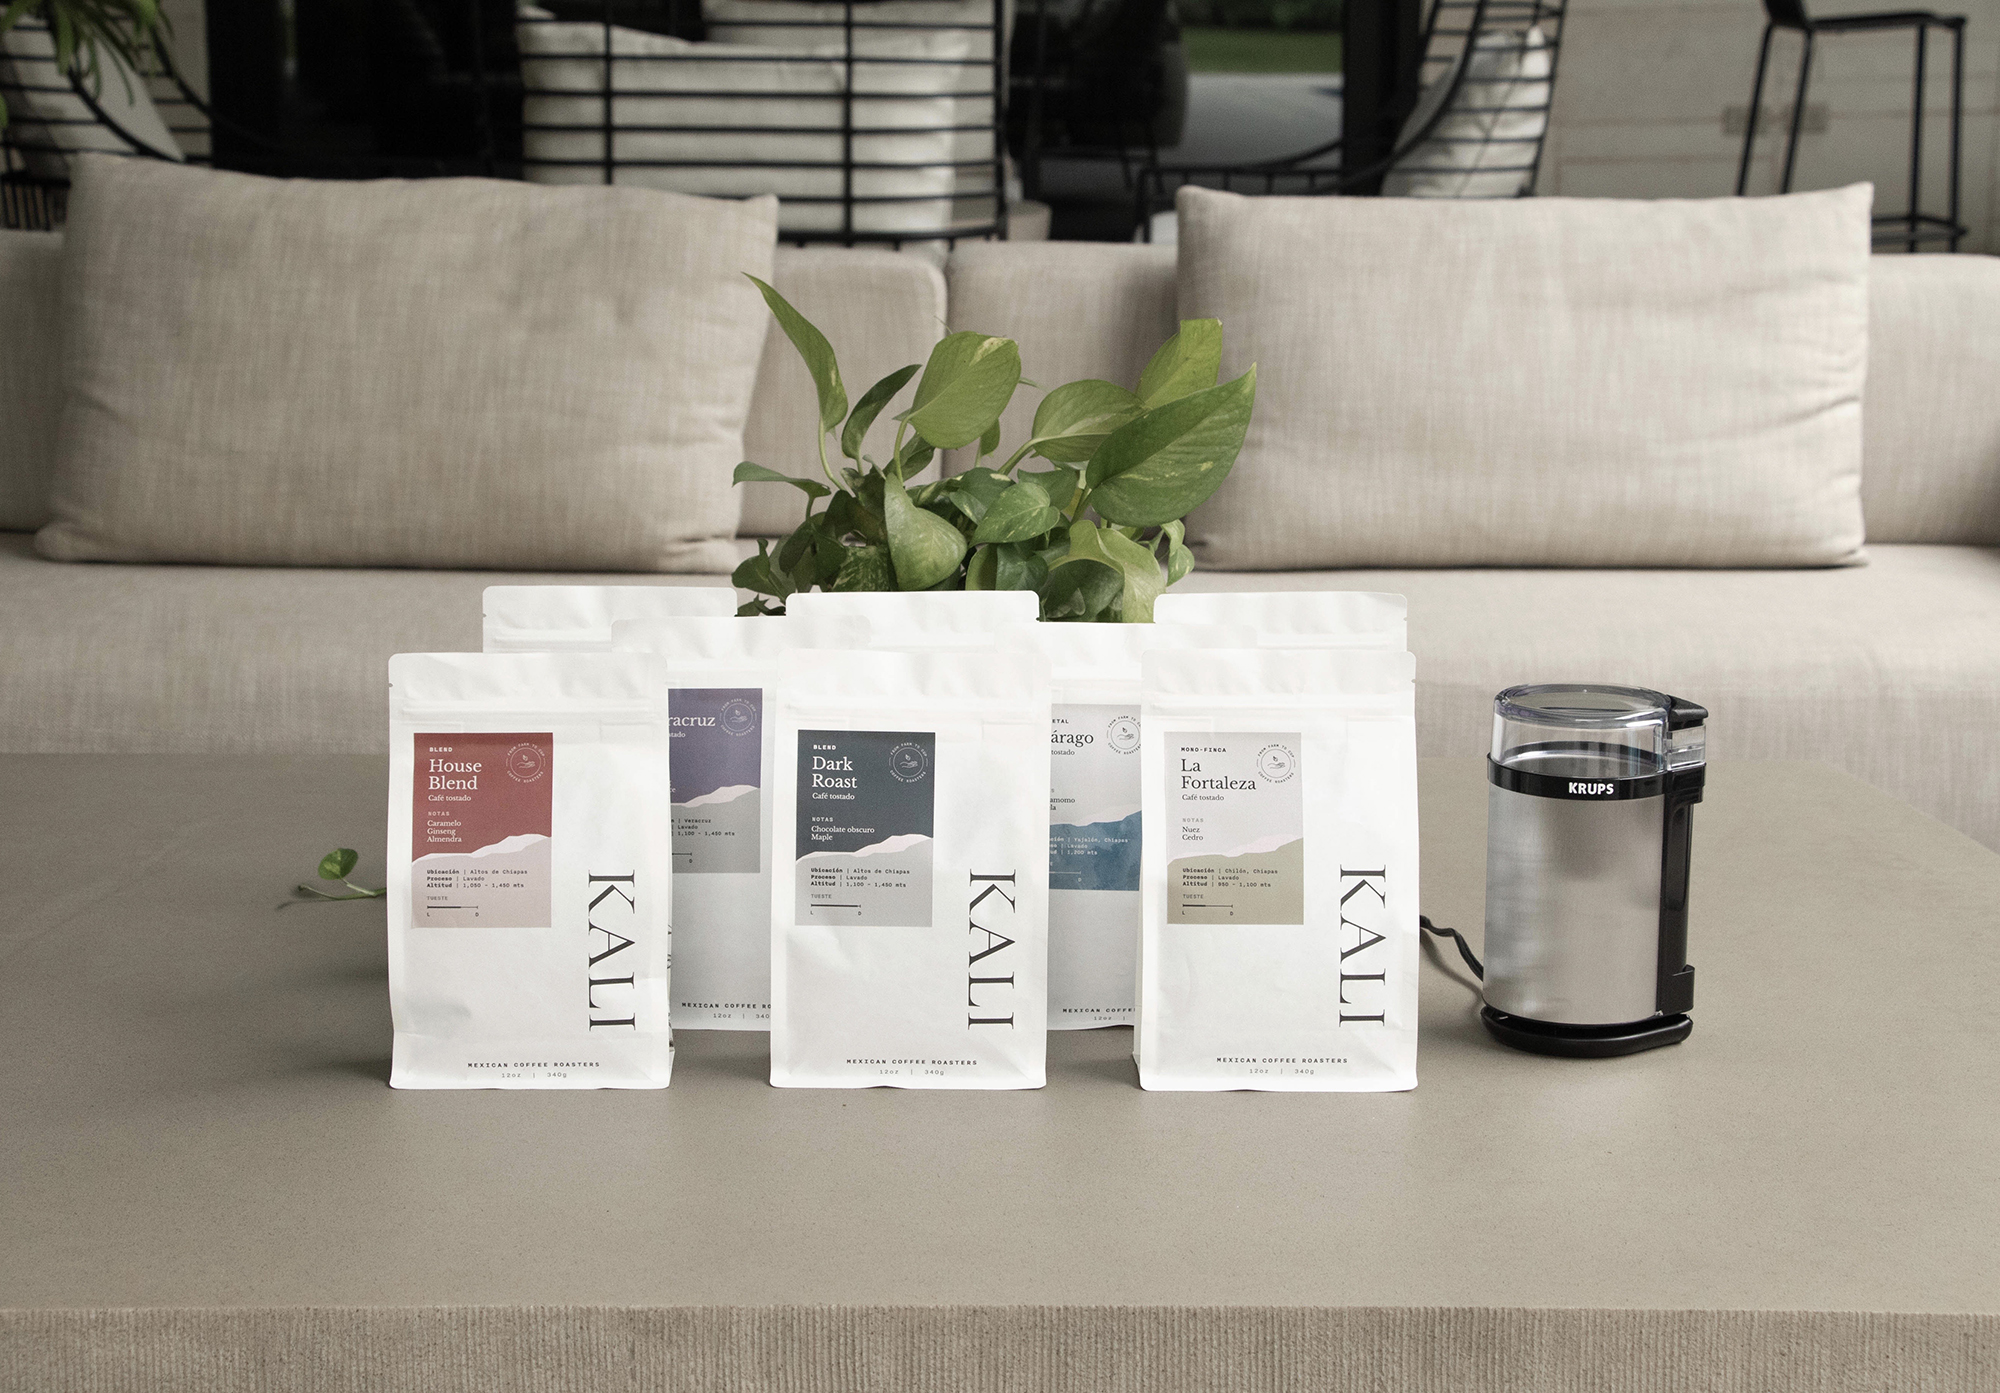 Kali Coffee Roasters In-House Creative Team Launches their New Coffee Bags